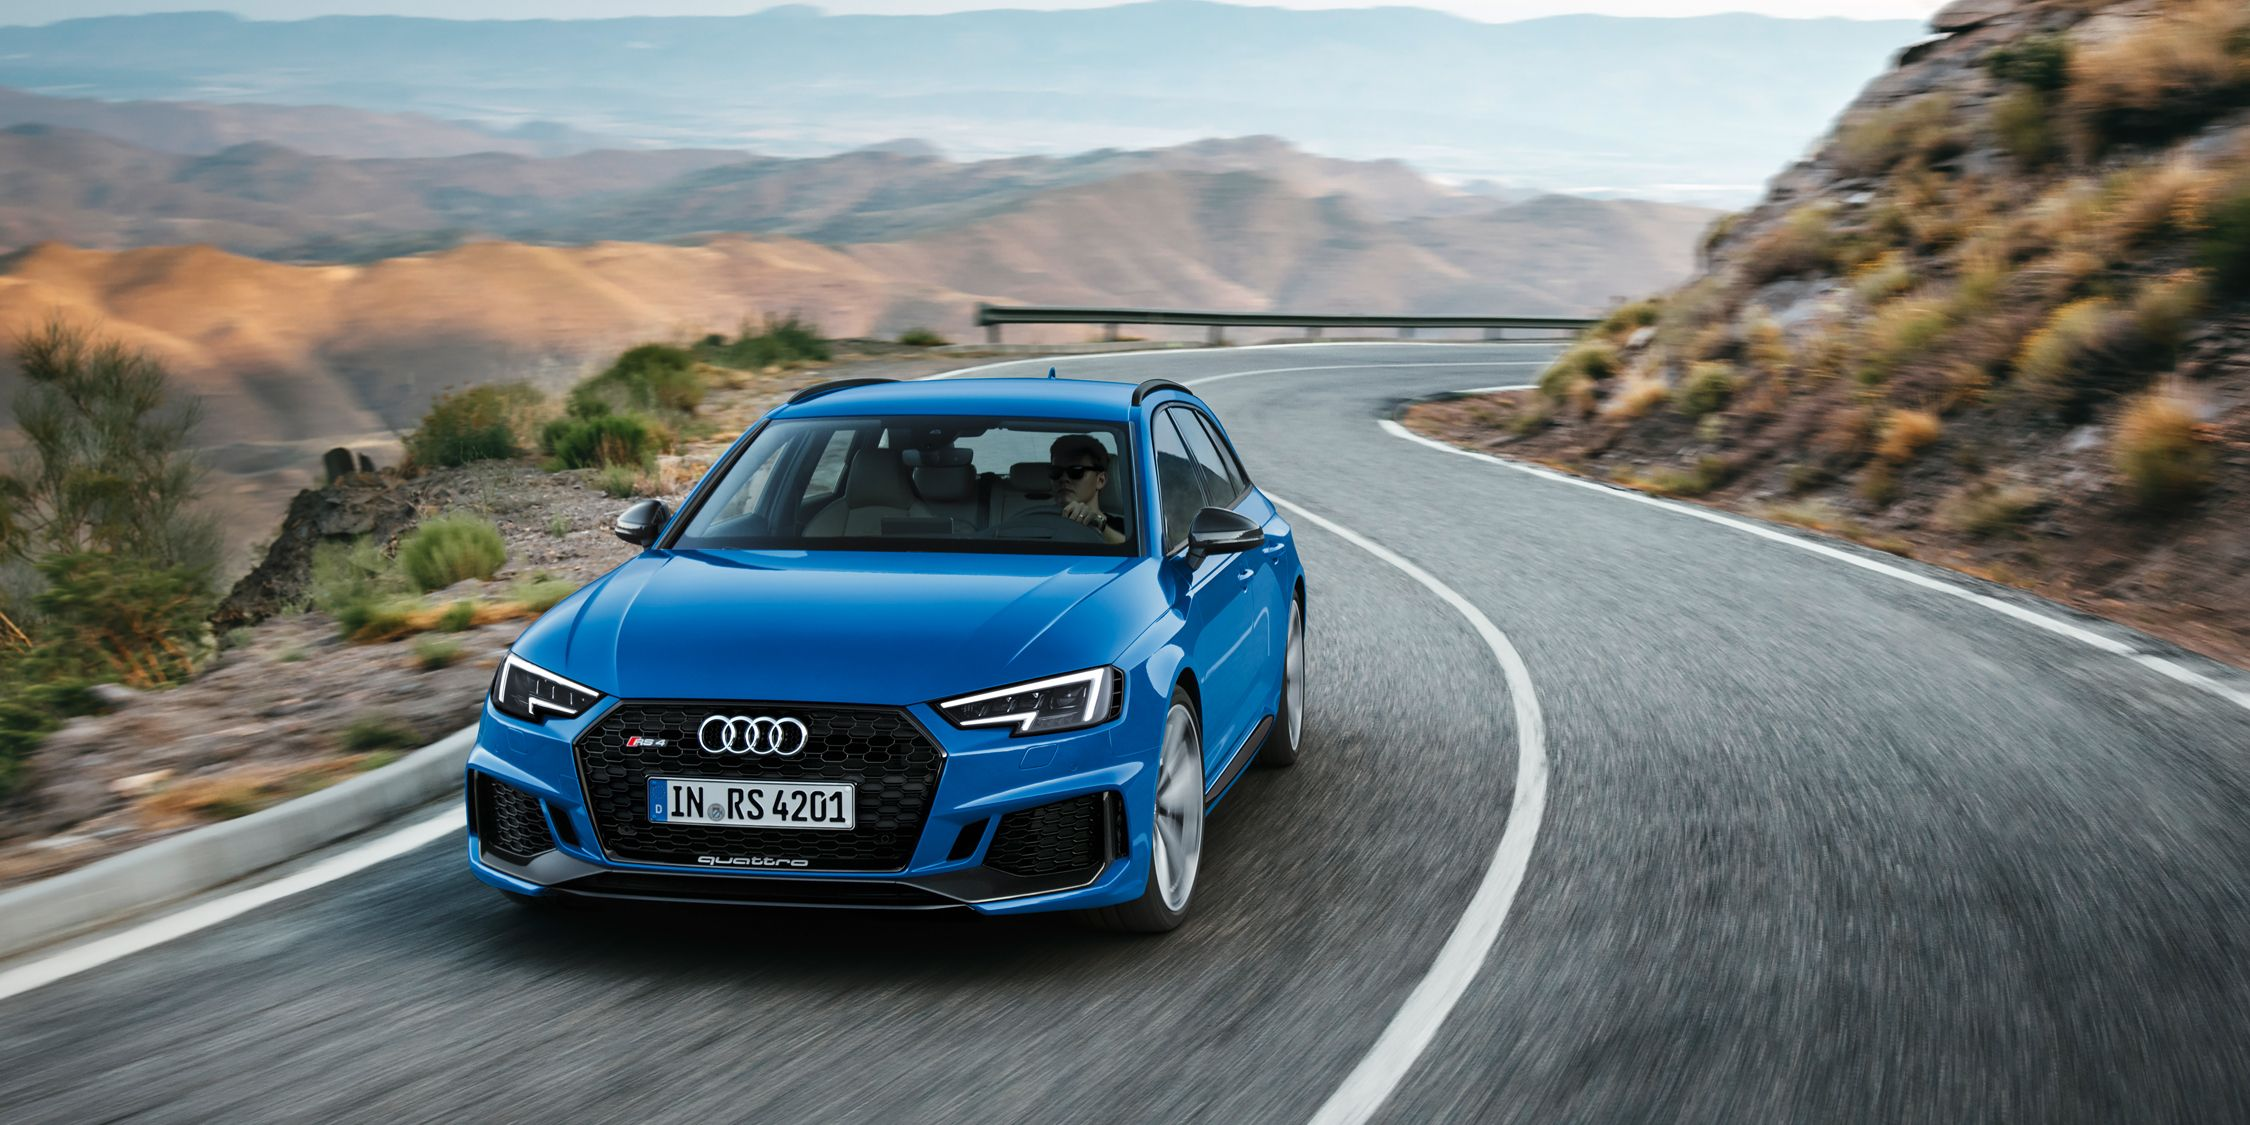 2018 Audi Rs4 Avant Photos And Info News Car And Driver